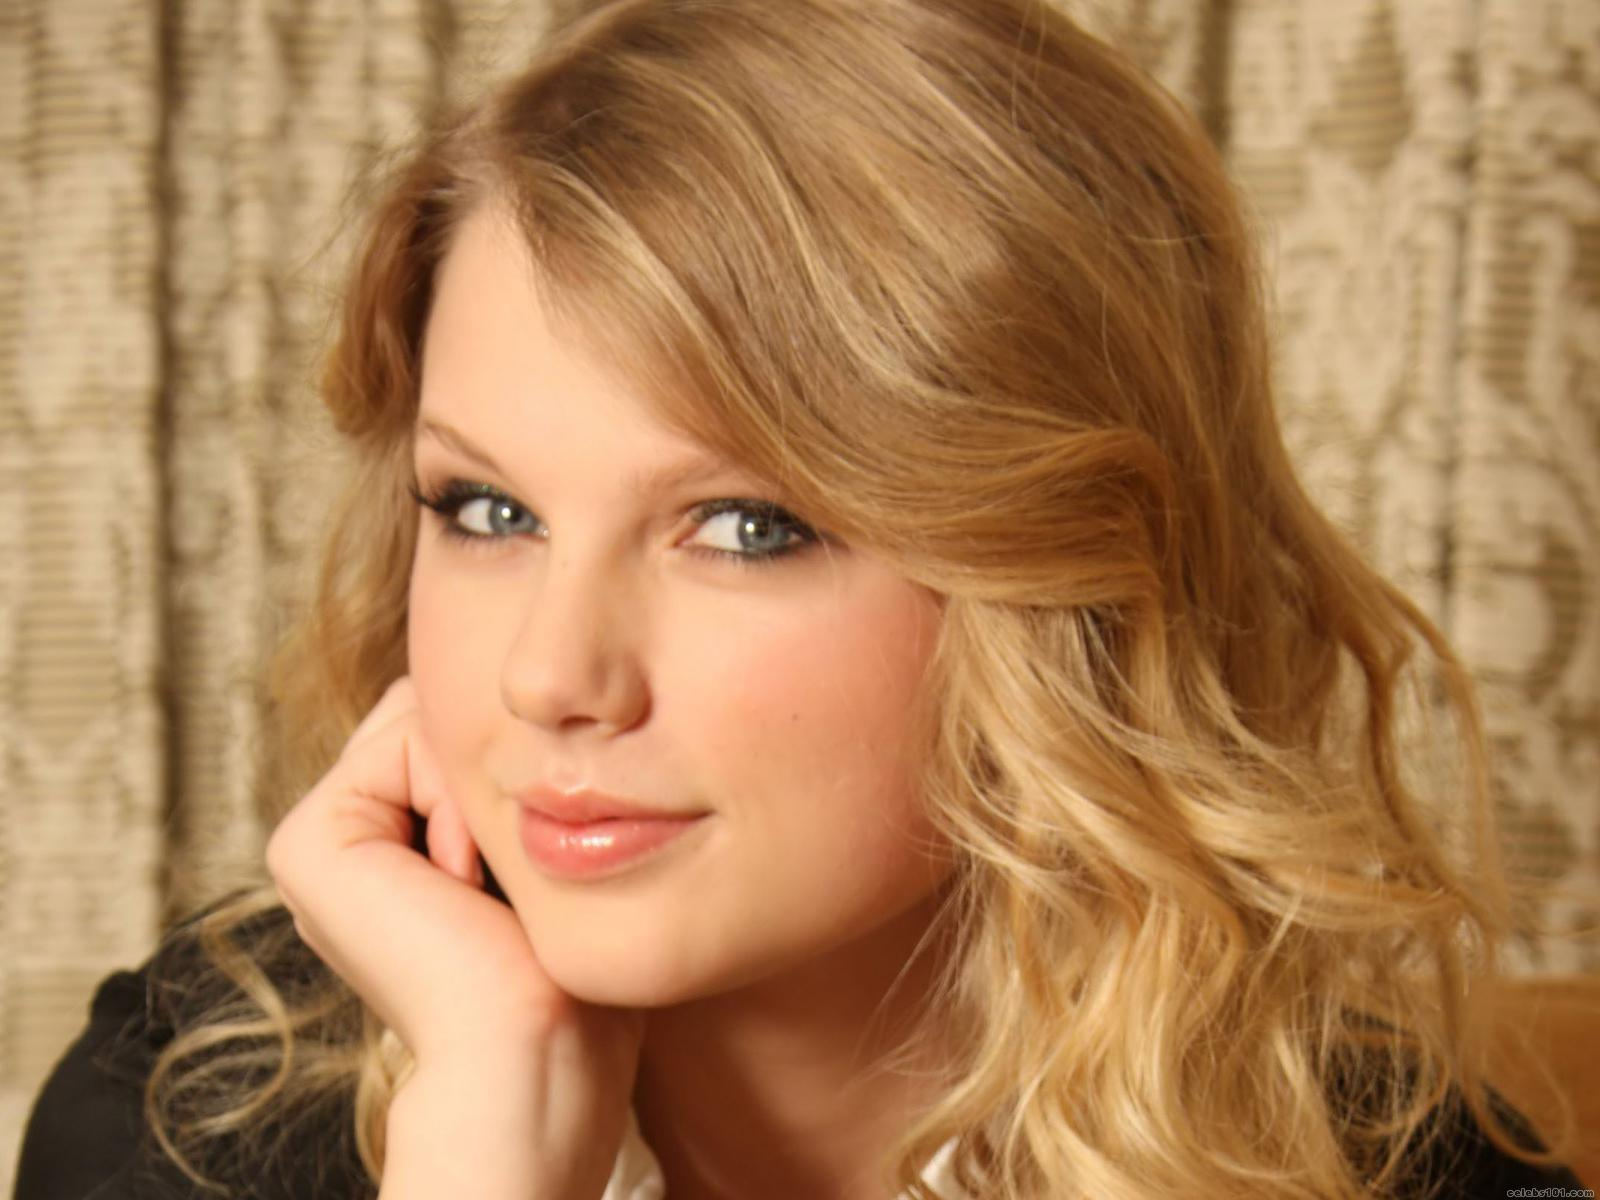 Taylor Swift Our Song Lyrics